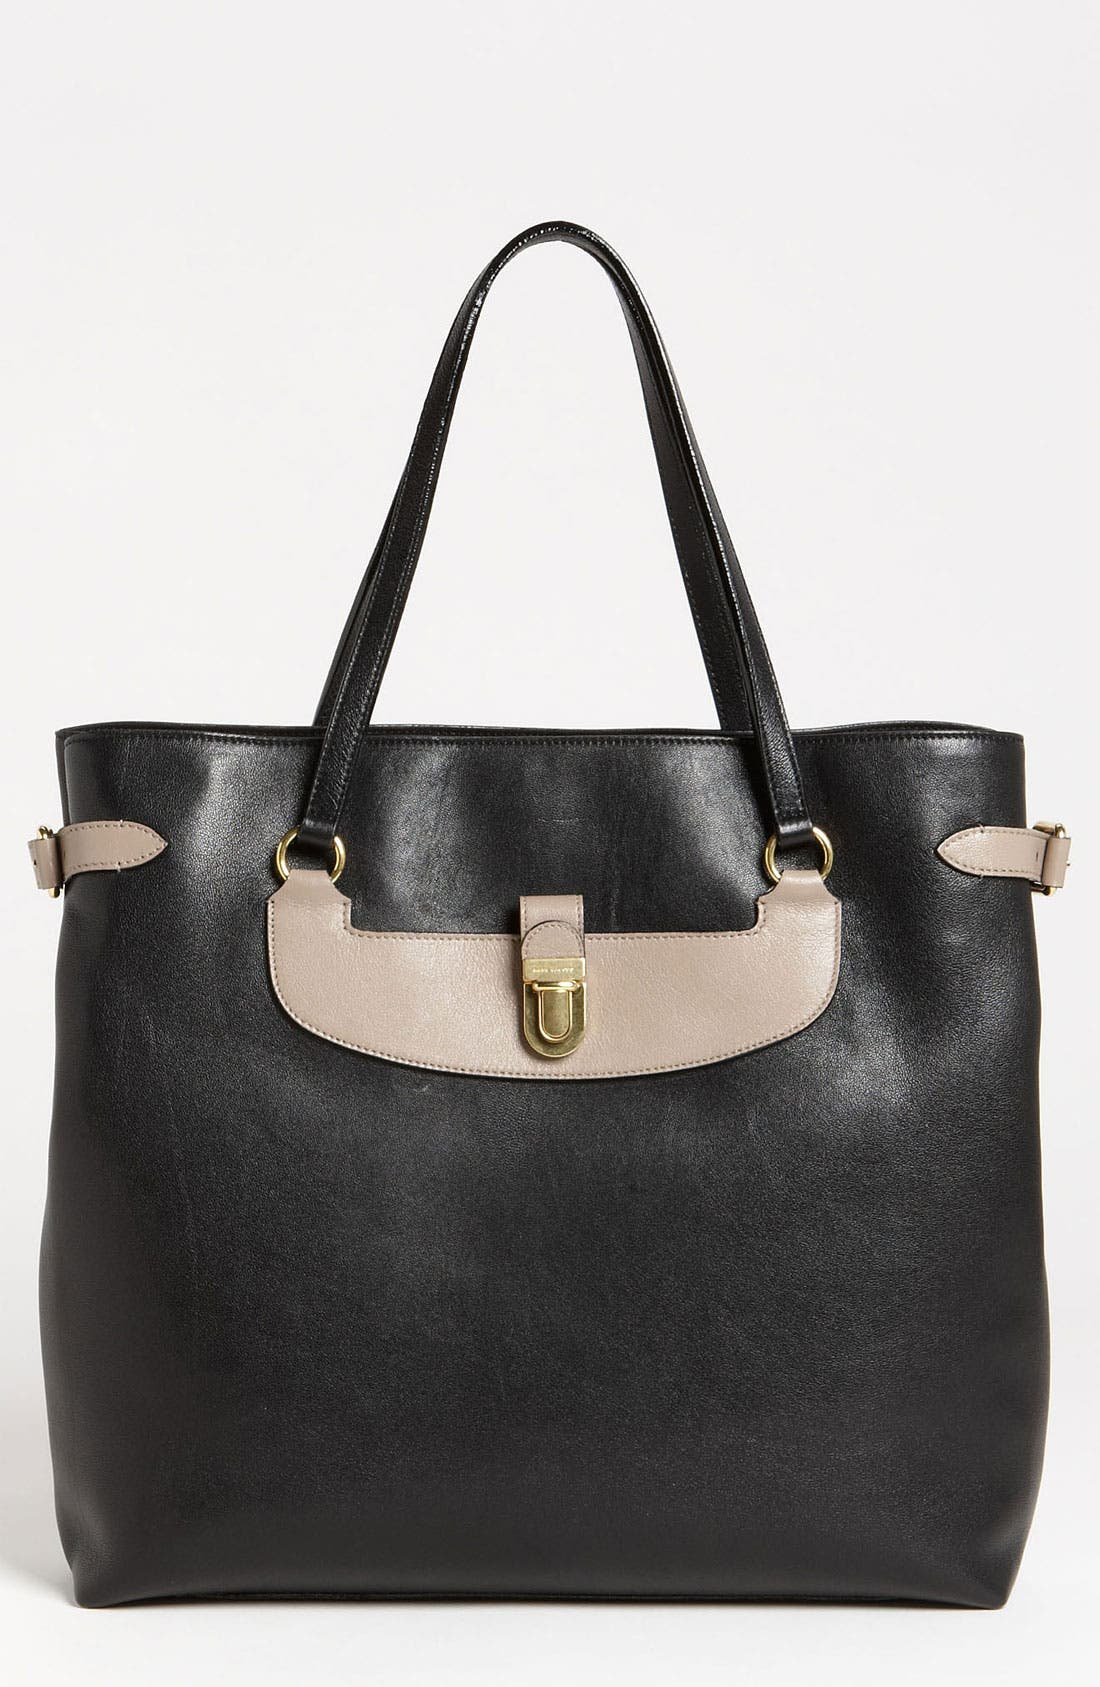 Alternate Image 1 Selected - MARC JACOBS 'Colorblocked Manhattan Mercer' Leather Tote